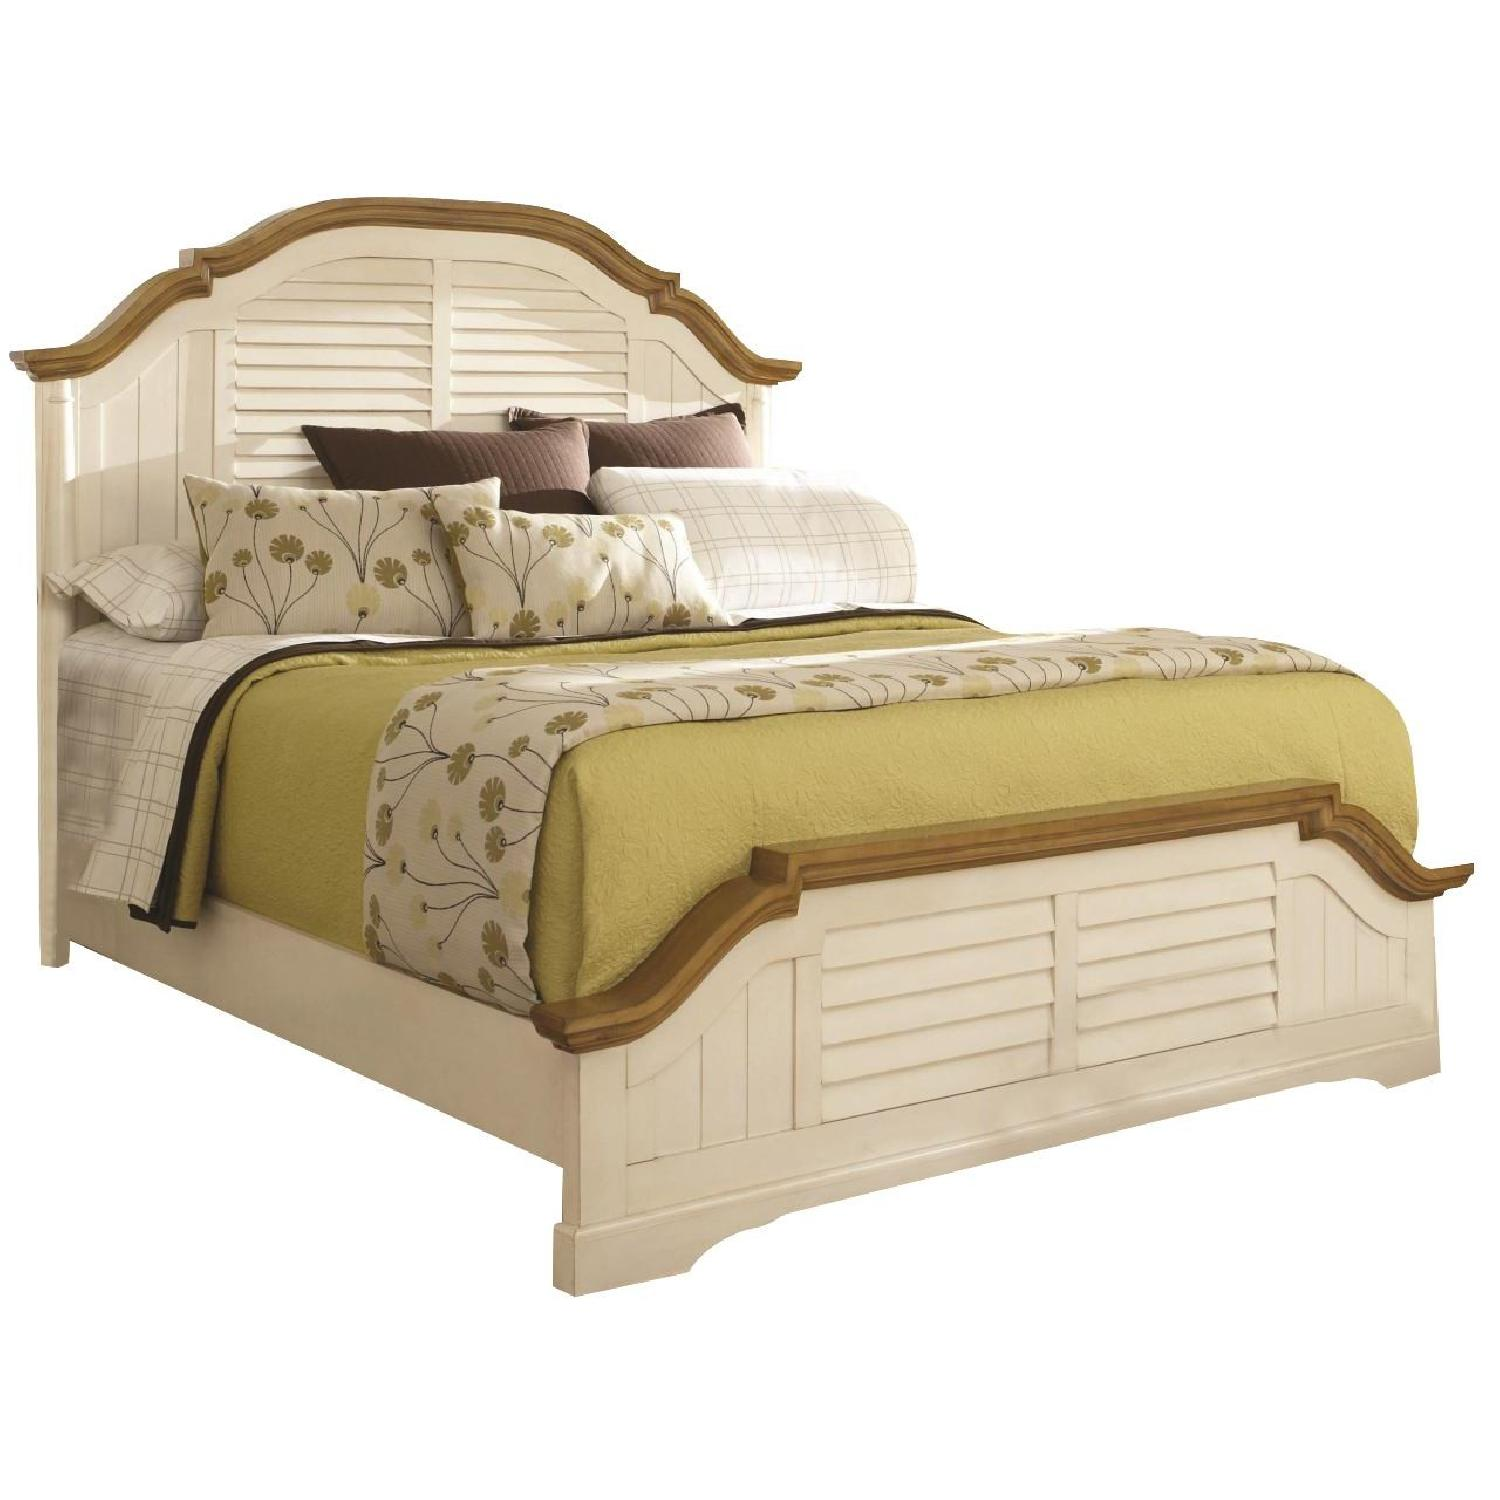 Cottage Style Bed in Buttermilk Finish w/ Arched Headboard